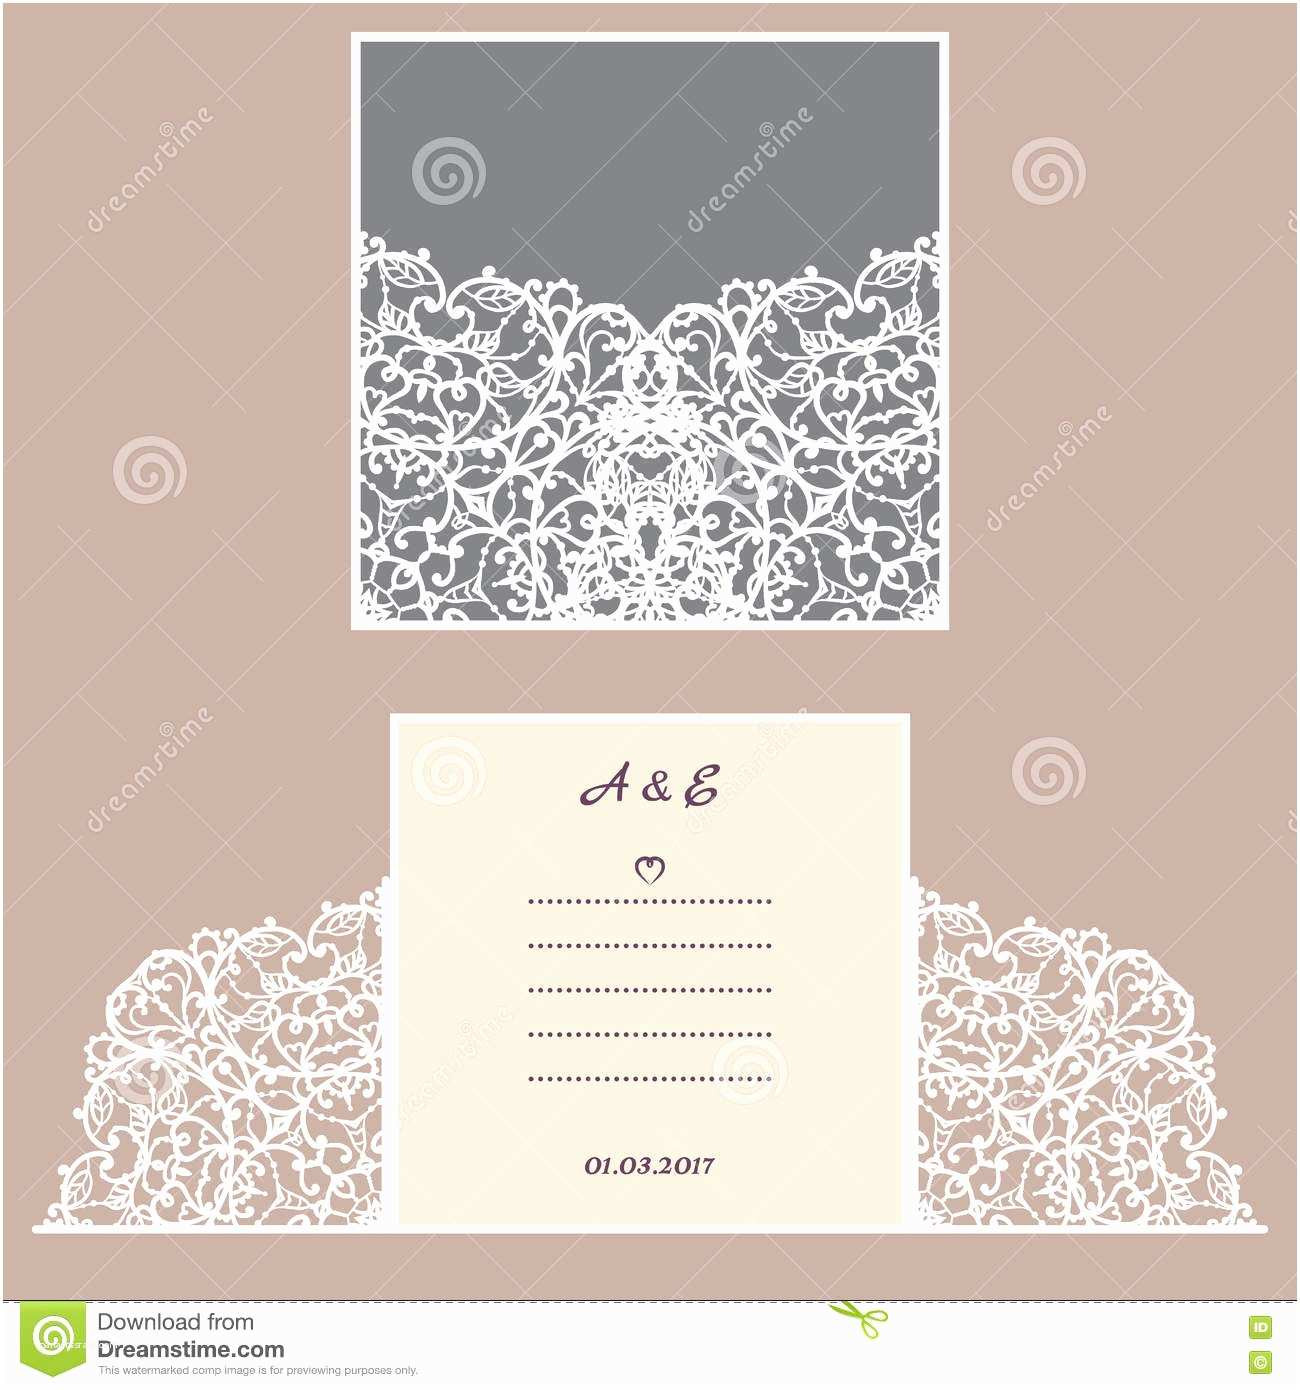 Wedding Invitation Envelope Template Wedding Invitation Greeting Card with Abstract ornament